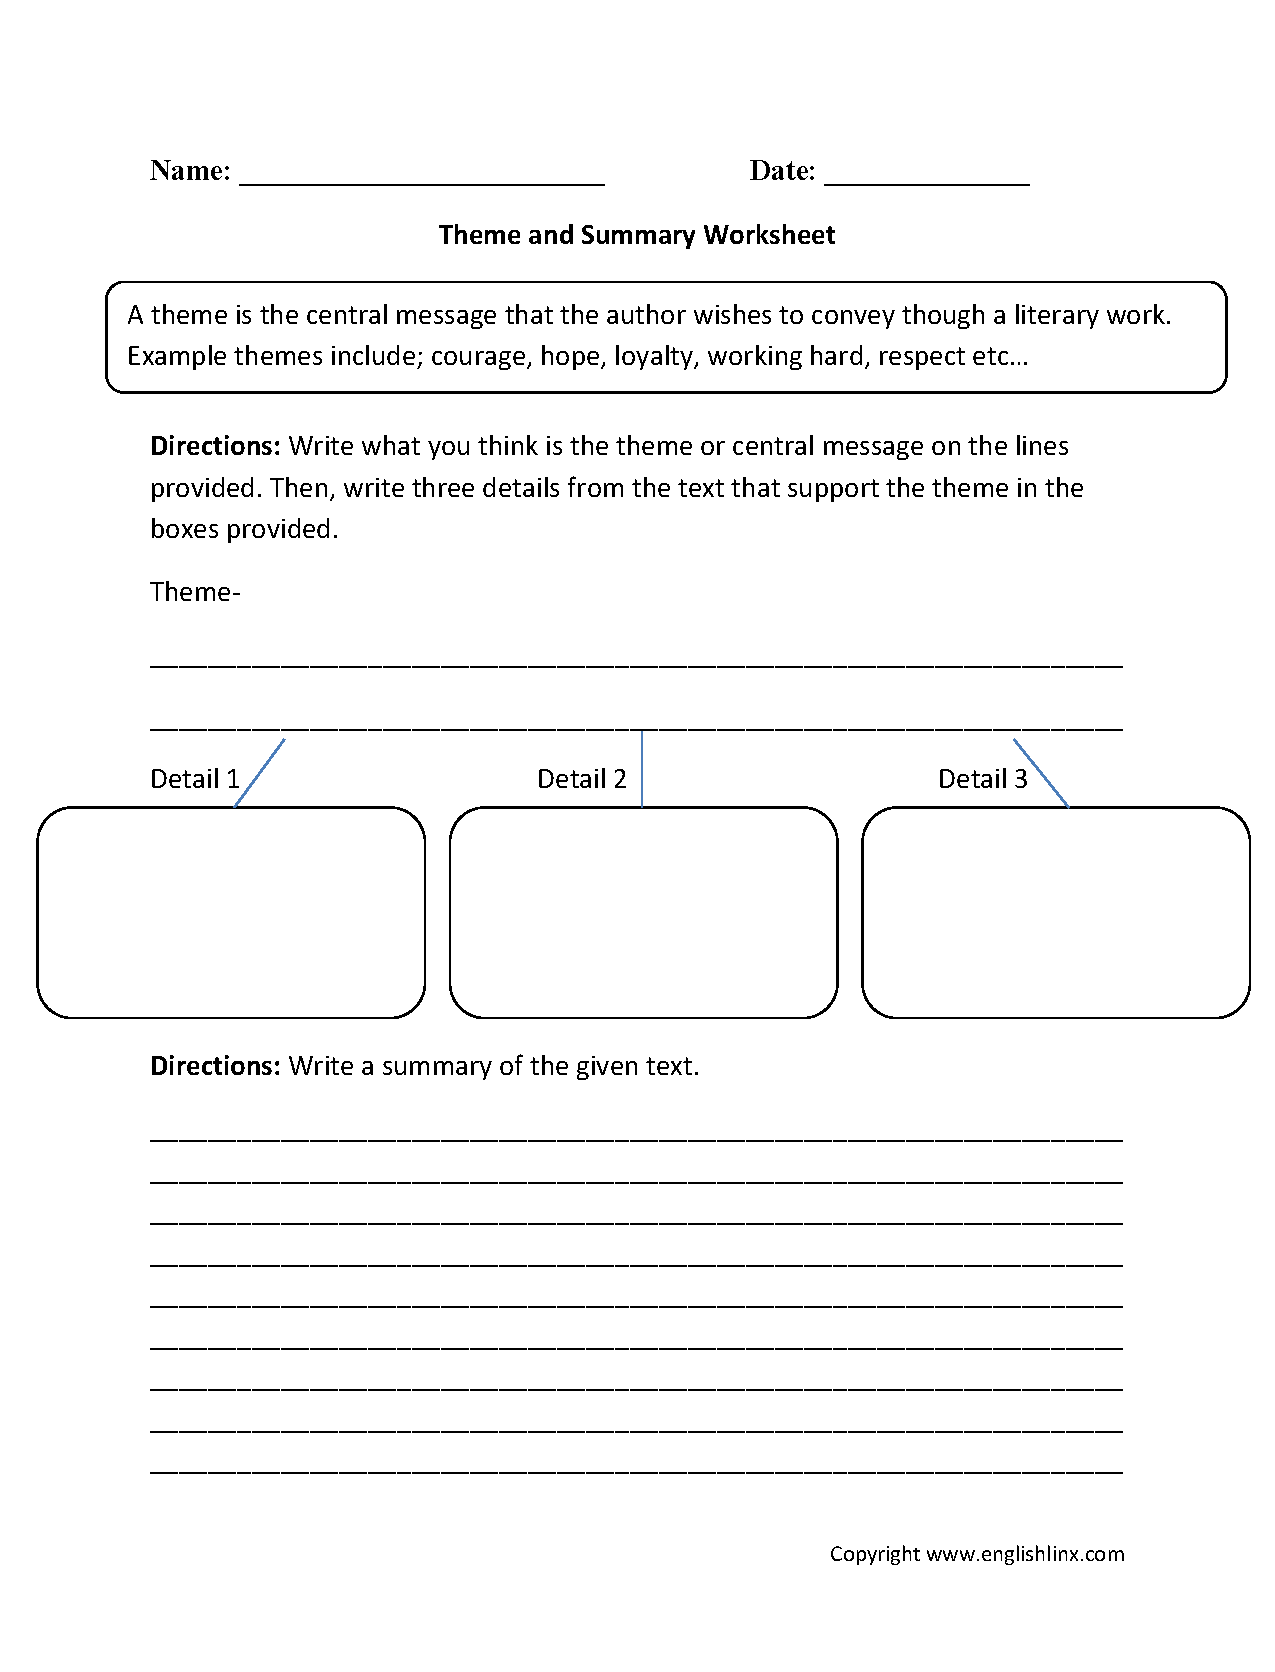 Englishlinx Theme Worksheets